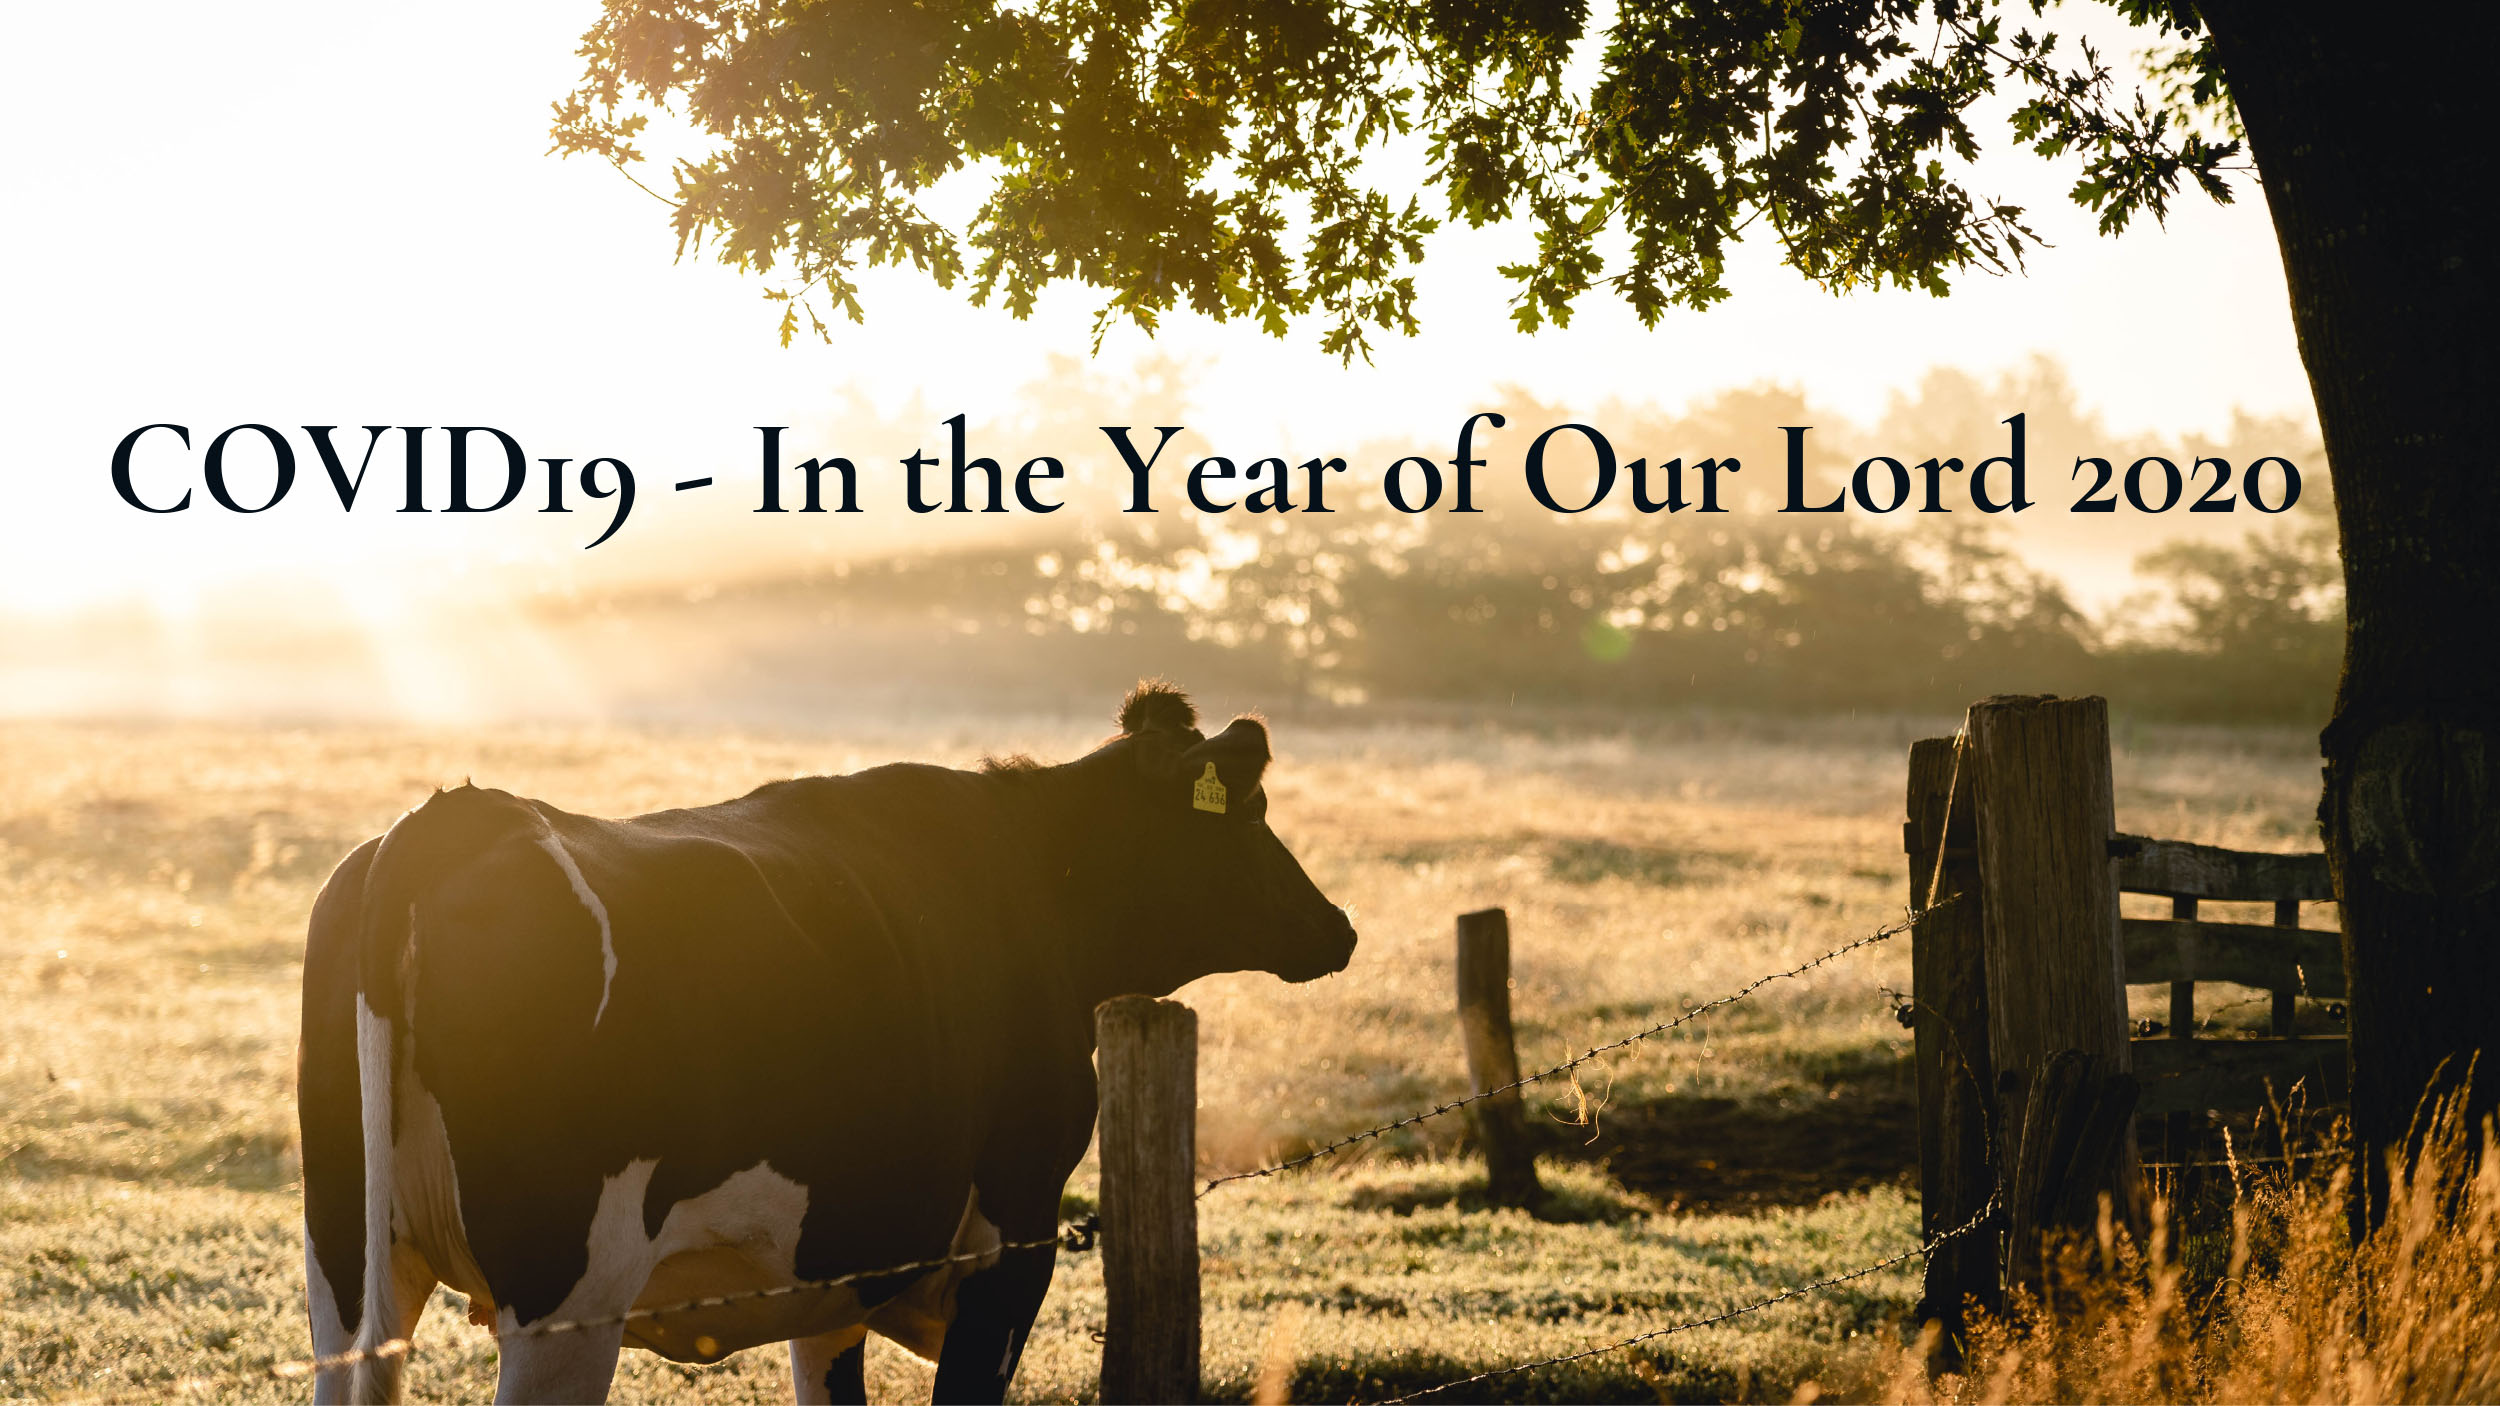 COVID19 – In the Year of Our Lord 2020